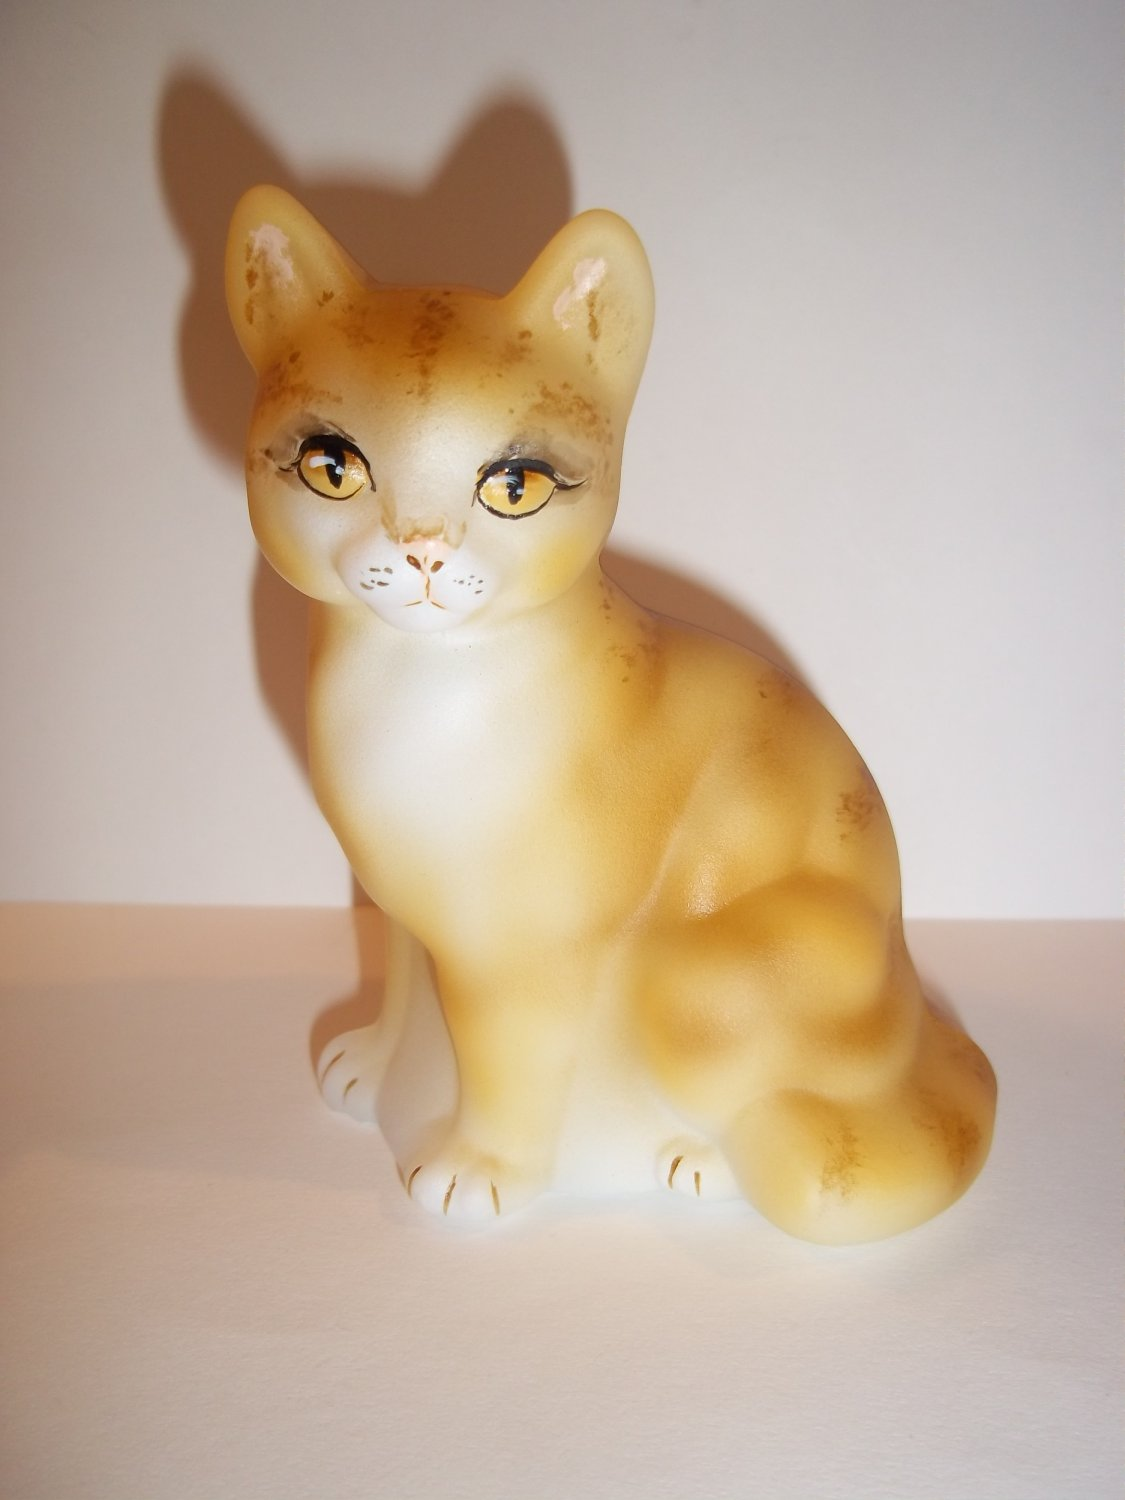 Fenton Glass Naural Orange Tabby Sitting Cat GSE Ltd Ed M Kibbe #7/17